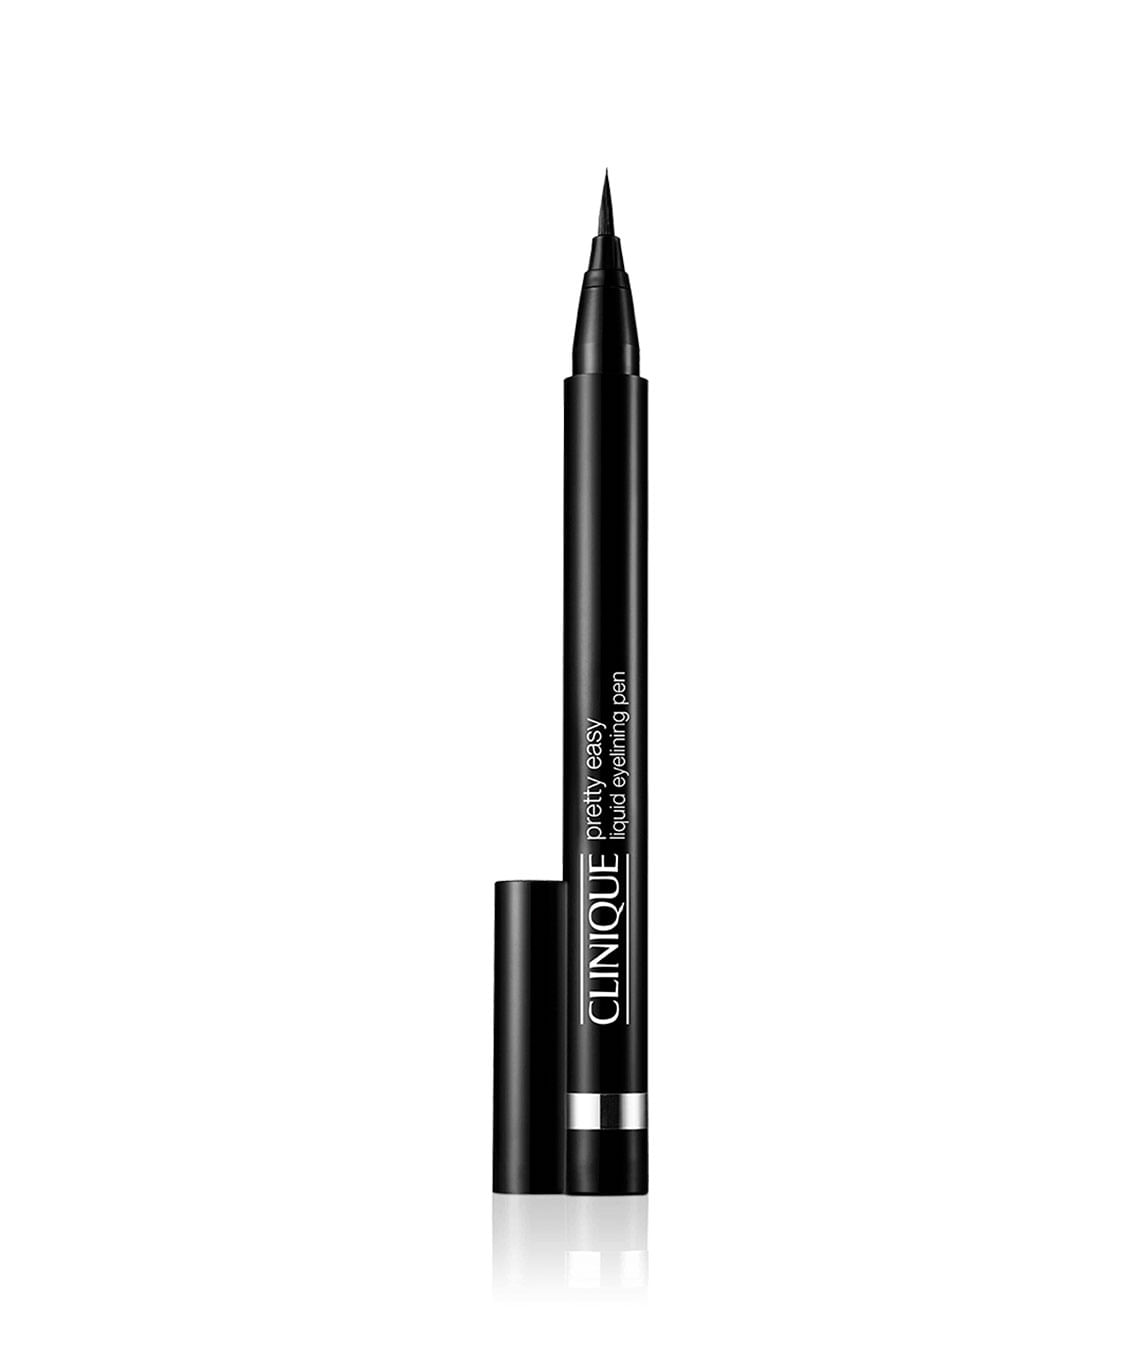 Delineador de Ojos Pretty Easy Liquid Eyelining pen Black 67 g